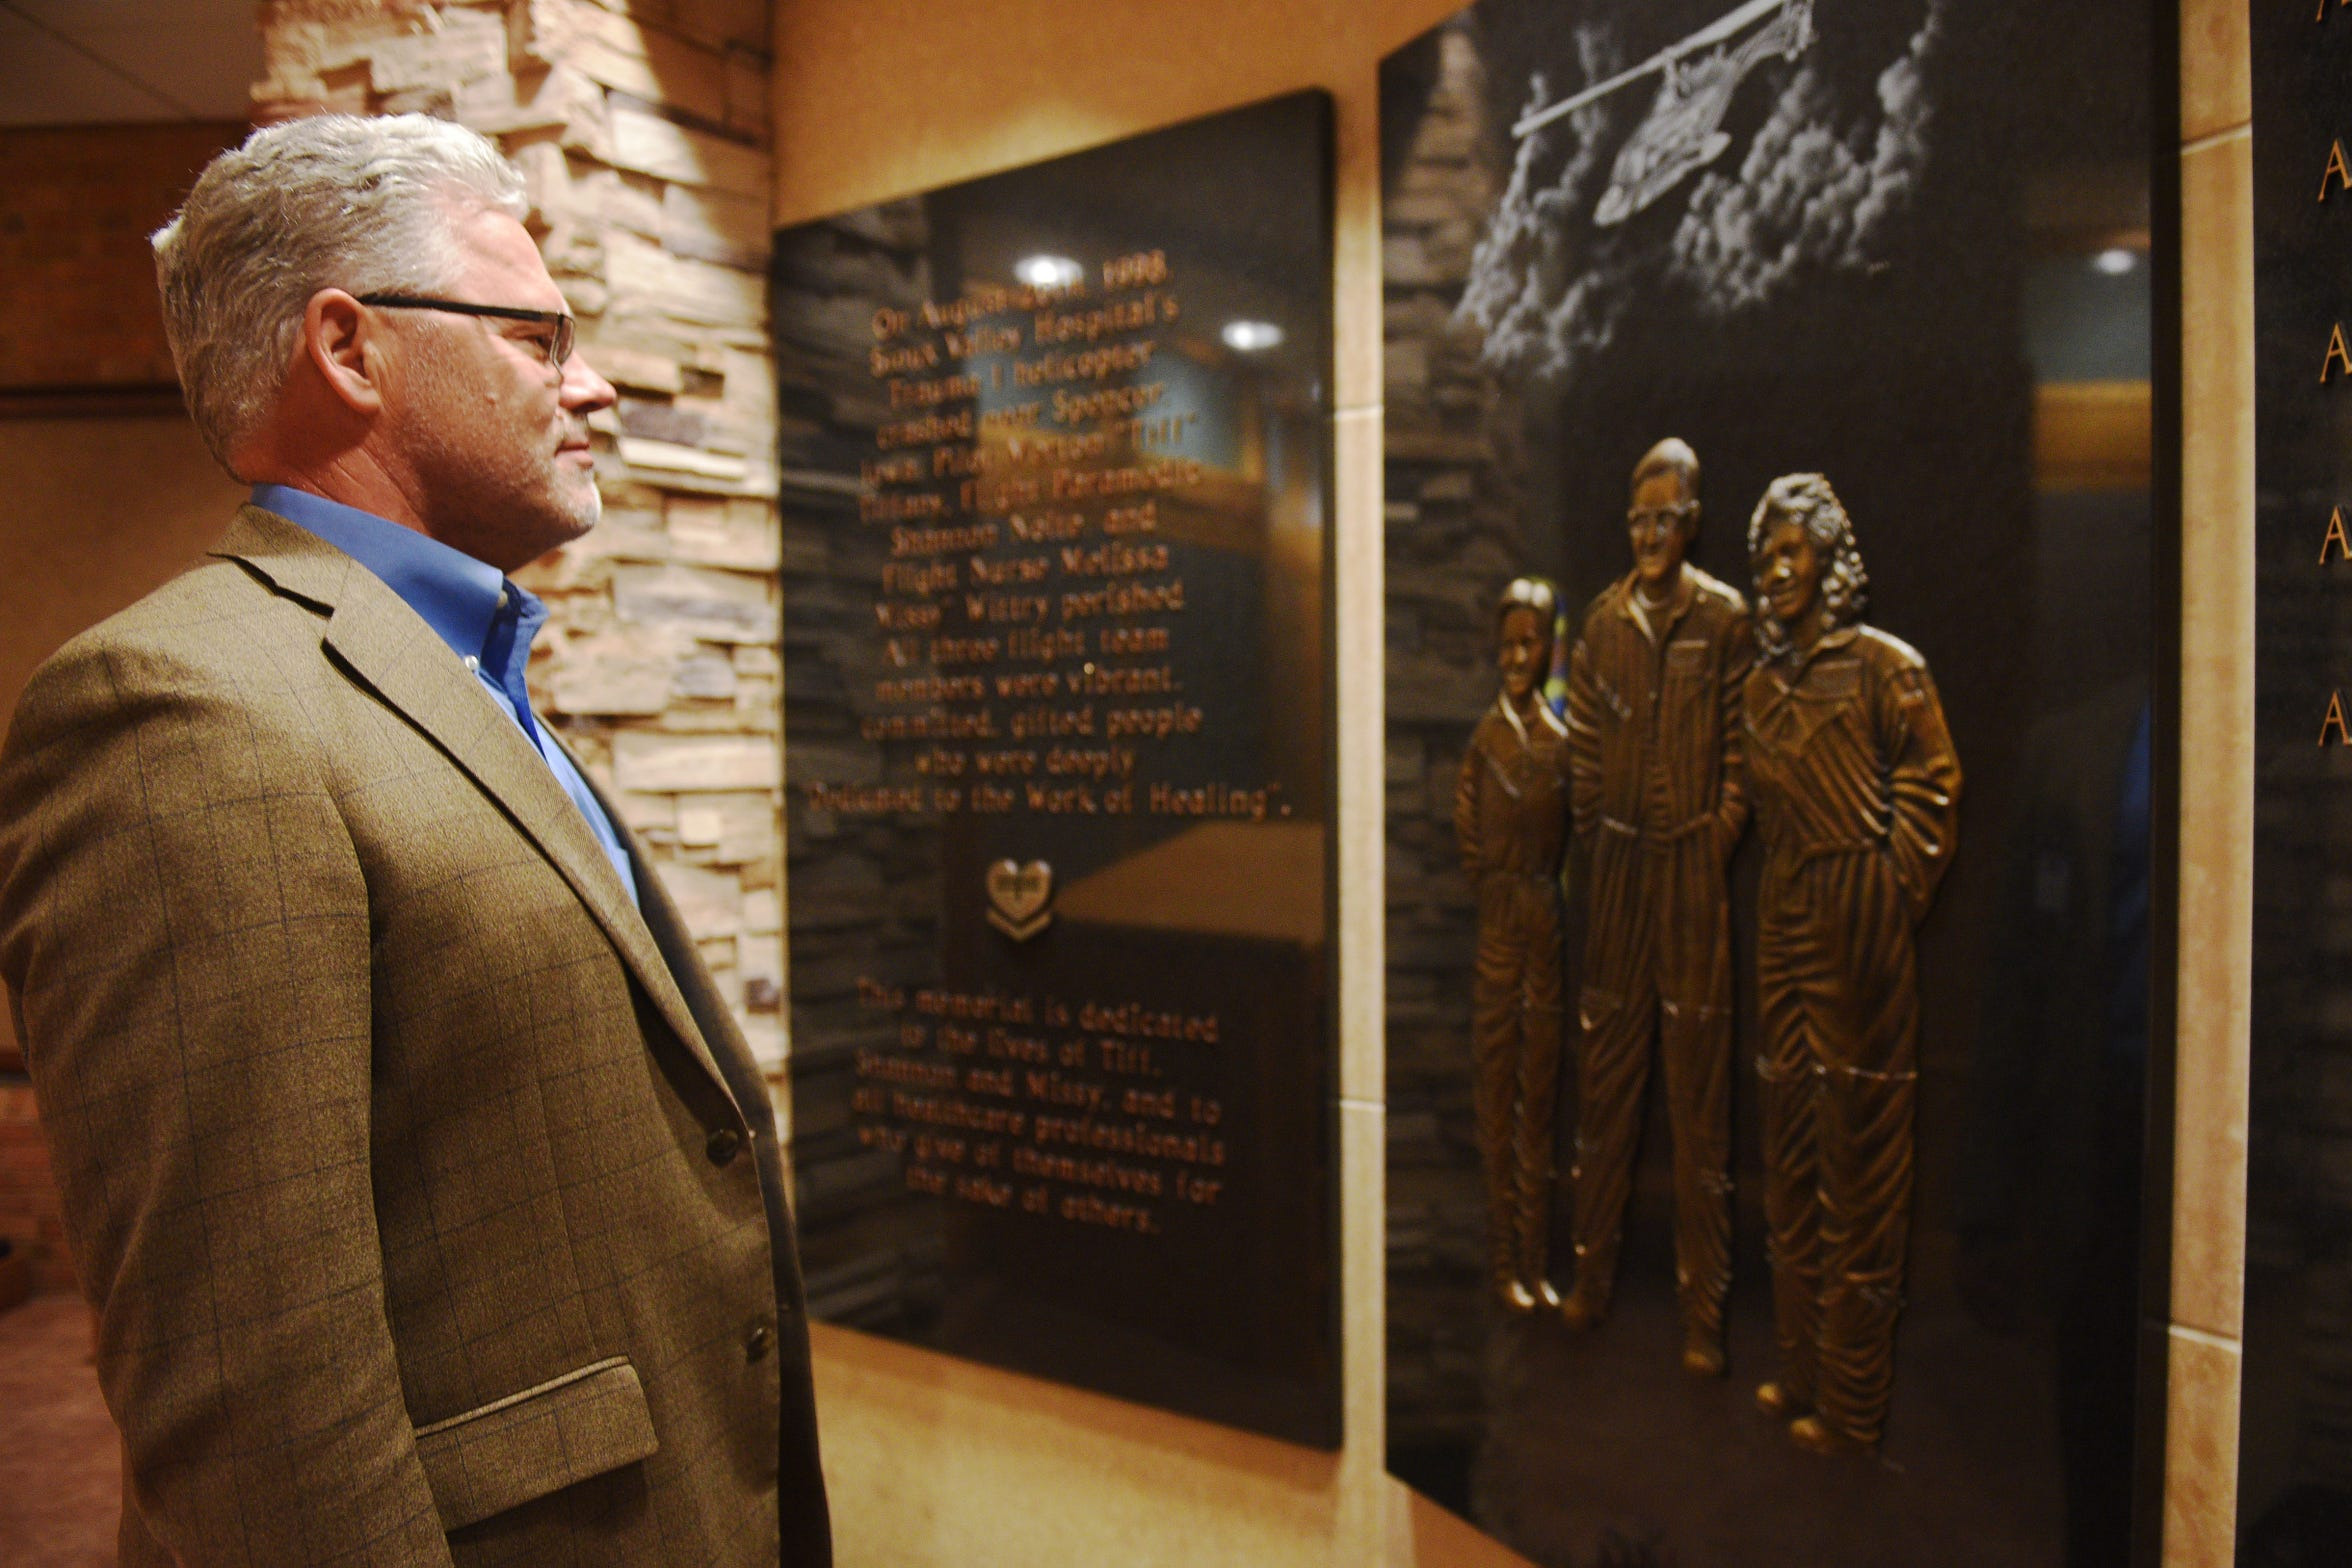 Sanford Health chief administrative officer Randy Bury visits the Sanford Memorial Garden for the 1998 helicopter ambulance crash that killed three crew members. Bury visited the memorial on Aug 22, 2018, 20 years after fatal crash.